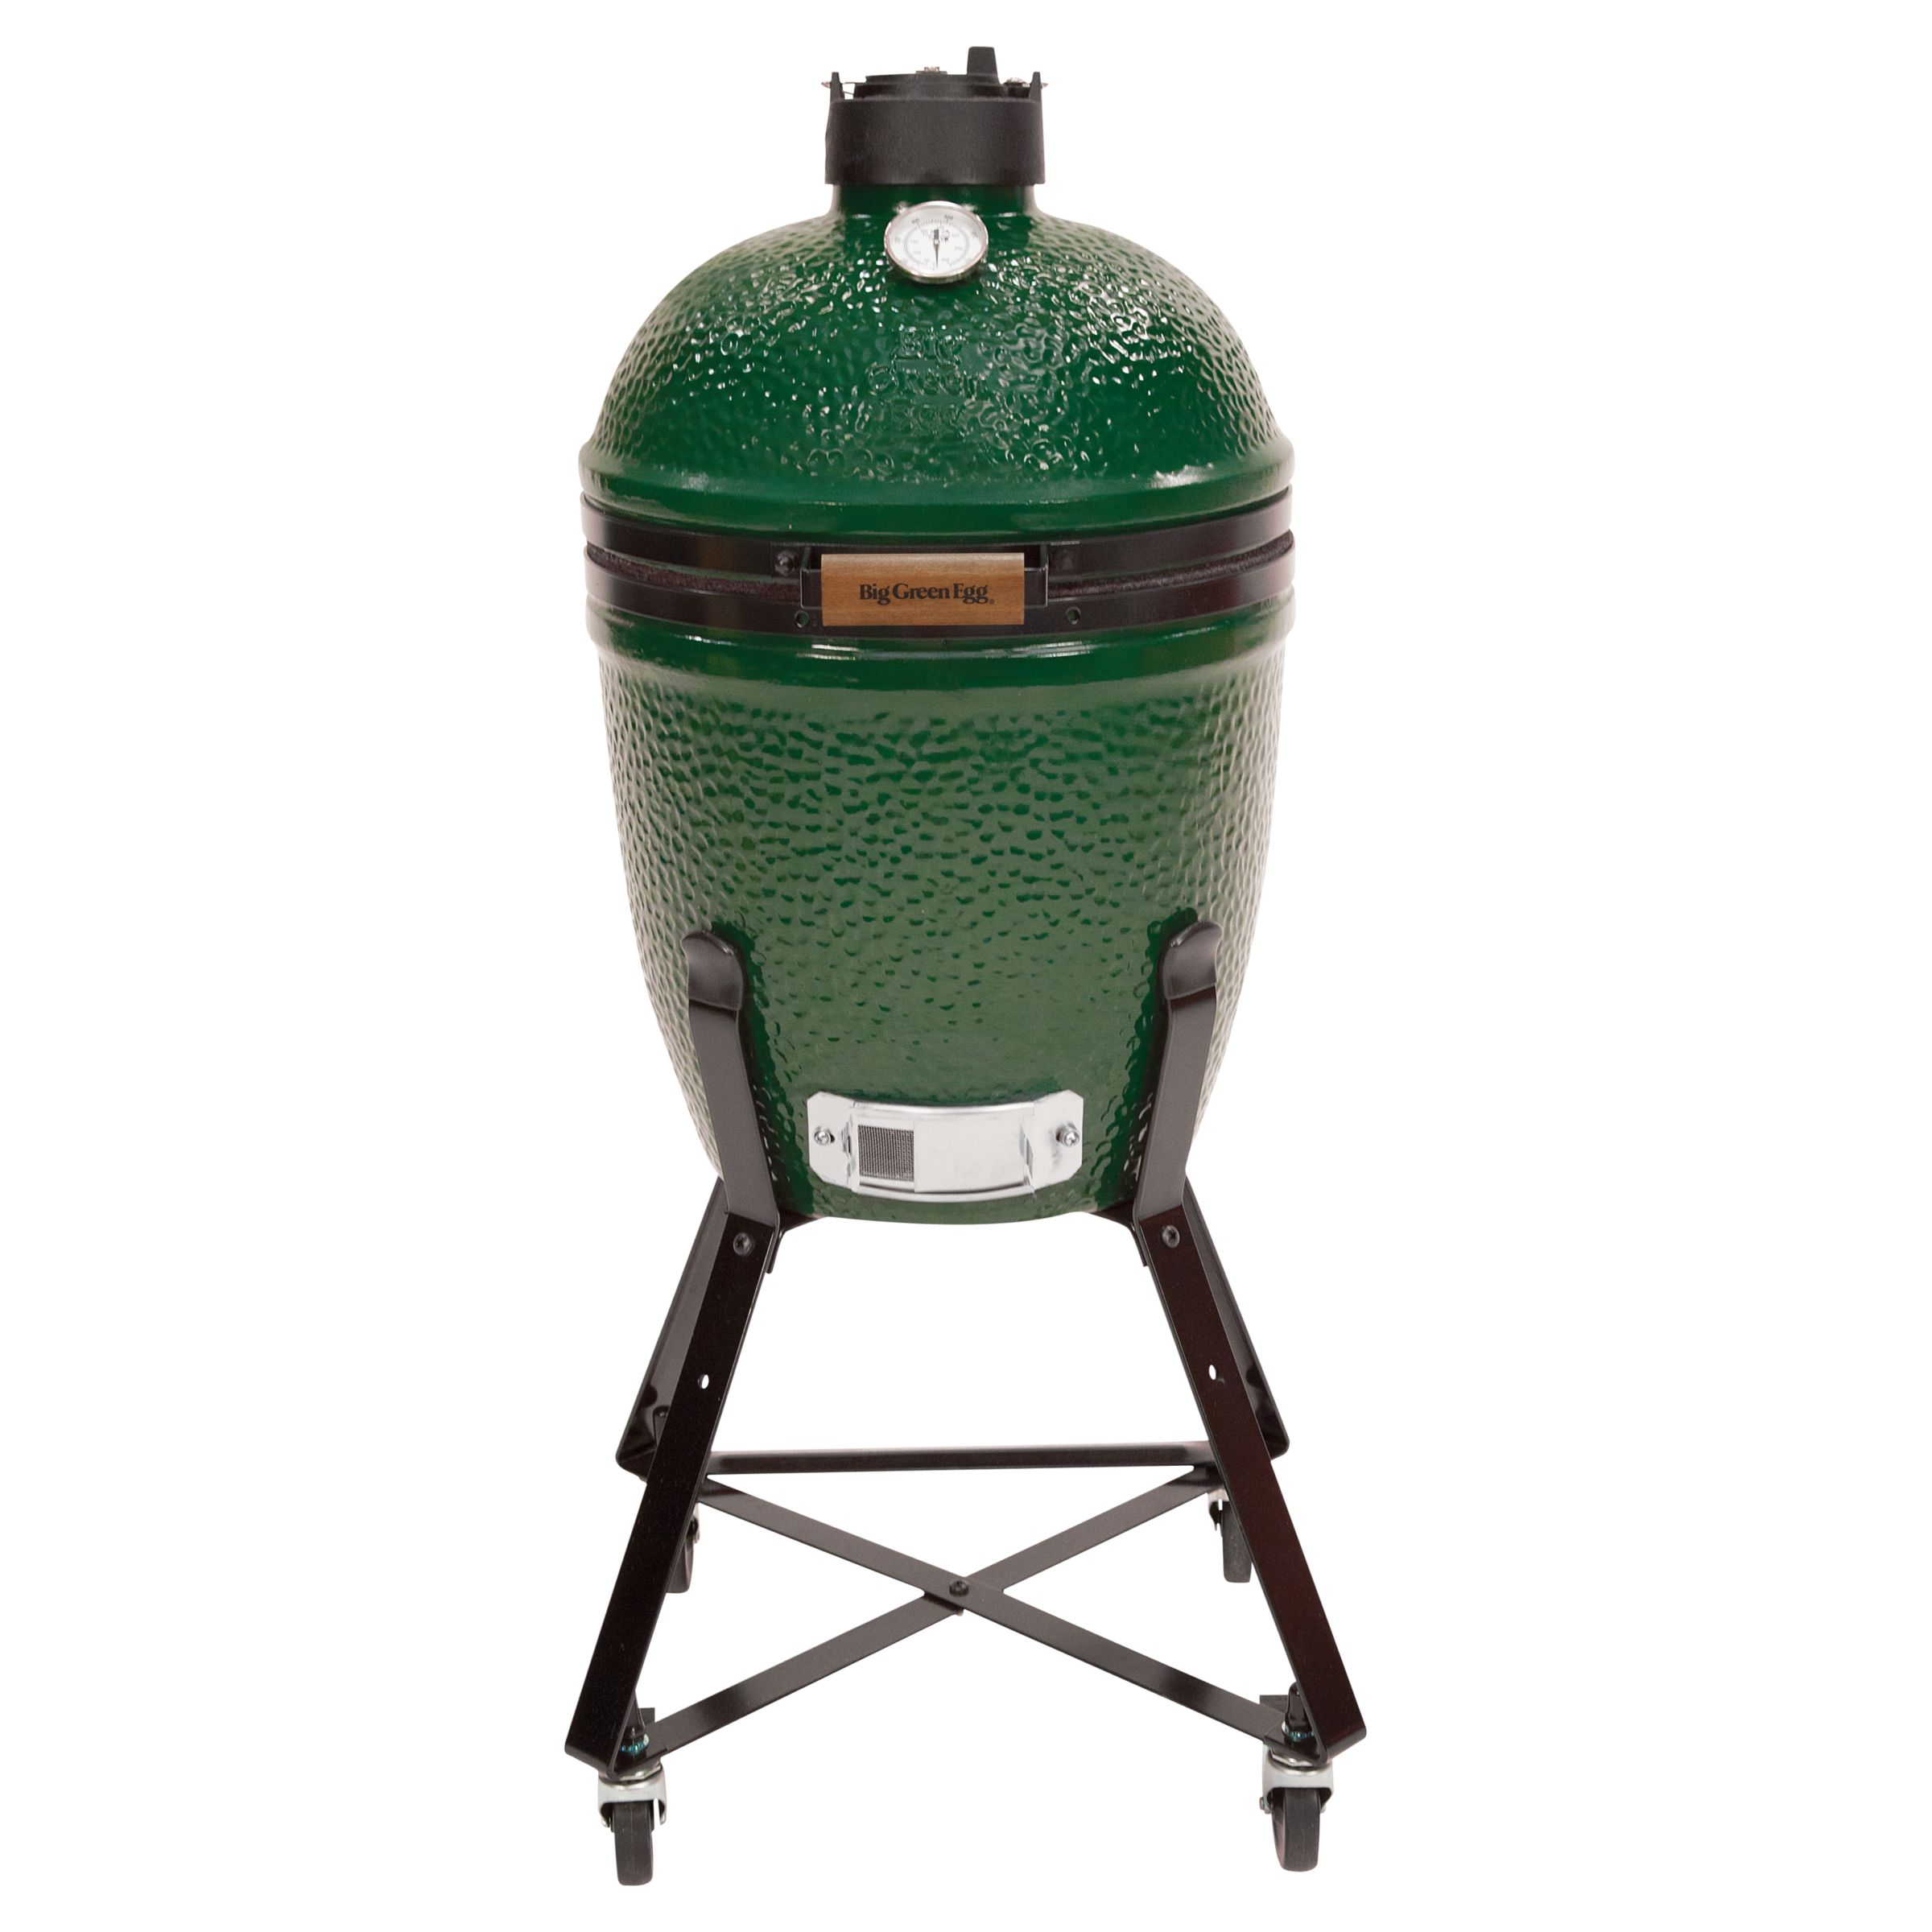 Big Green Egg Small Charcoal Barbecue